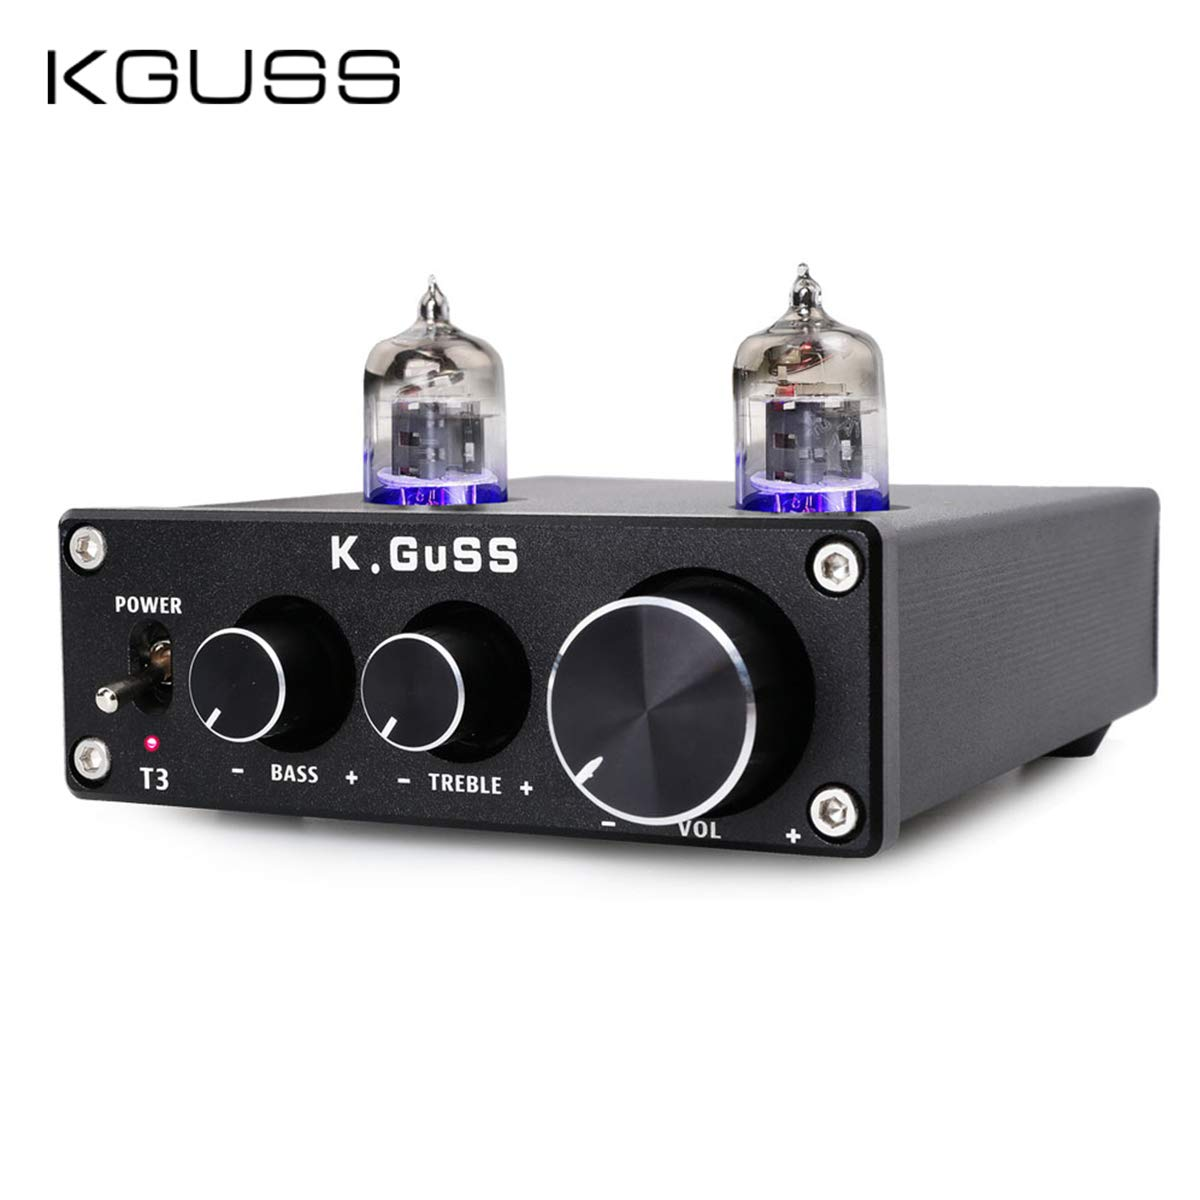 KGUSS T3 Vacuum Tube Mini Bile 6J1 Preamp Tube Amplifier Buffer Tube Amp HiFi Audio Preamplifier Treble & Bass Adjustment Pre-amps DC12V(Black) by KGUSS